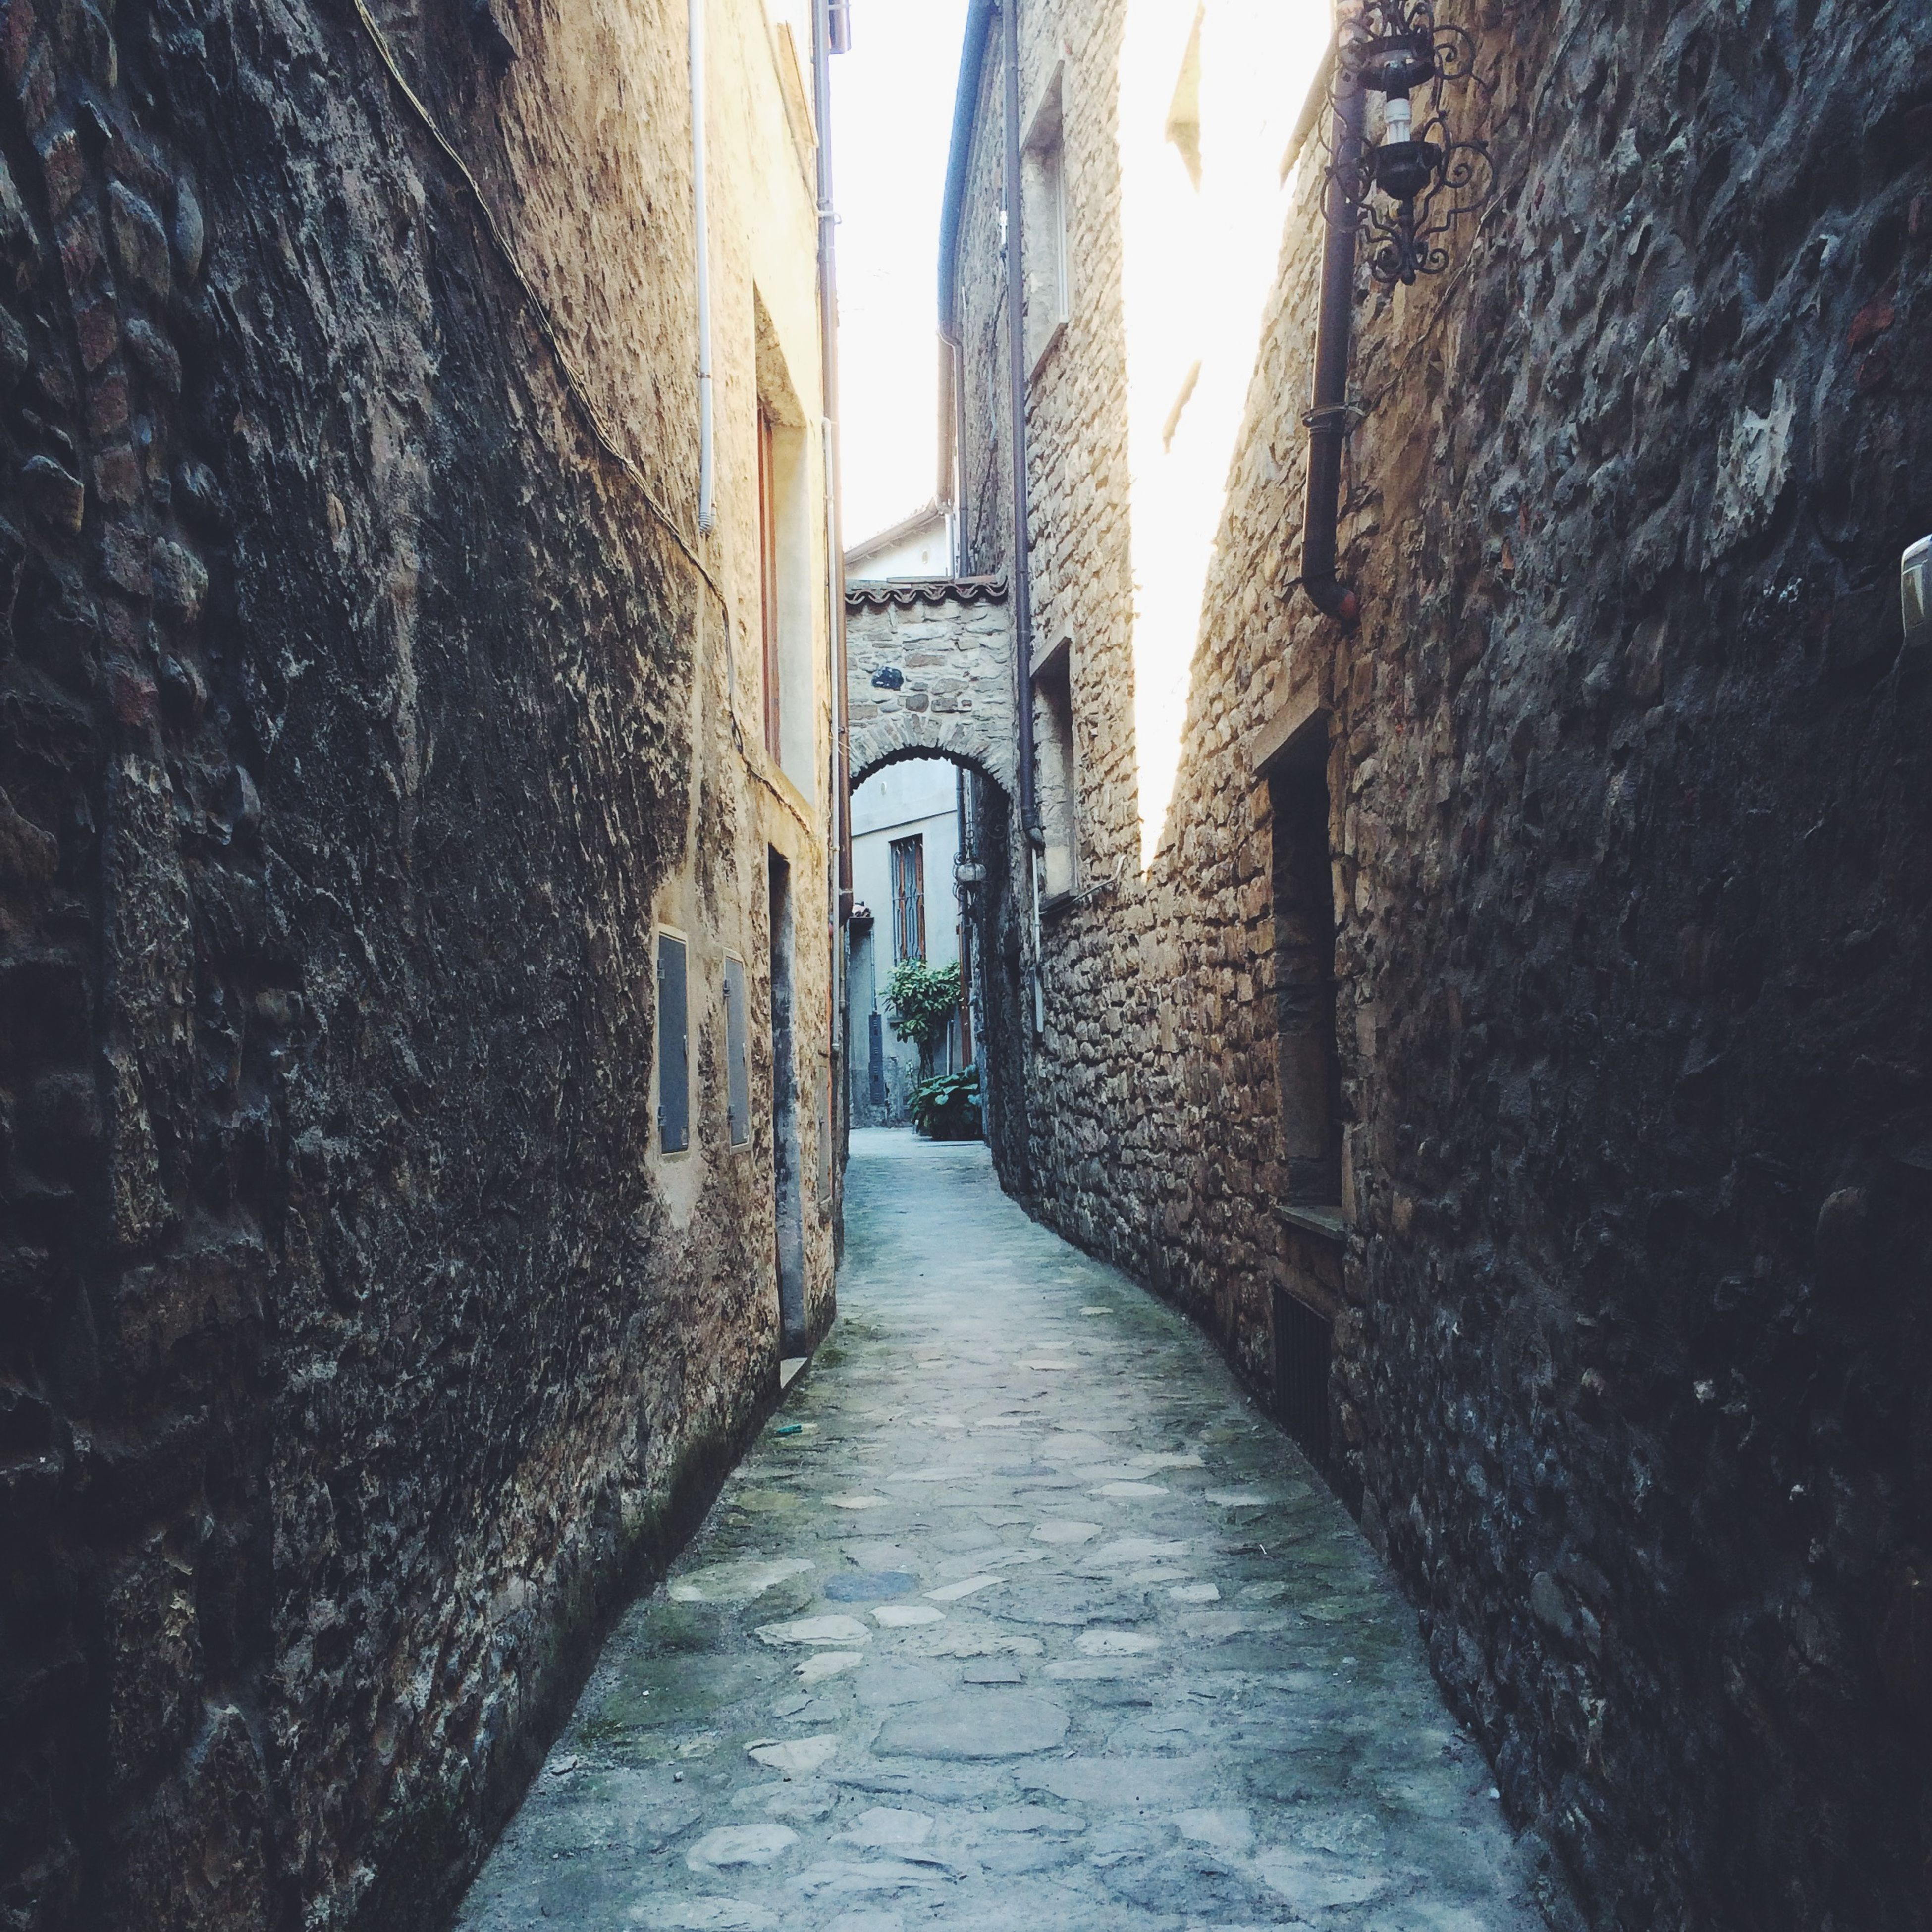 Alley amidst houses in town